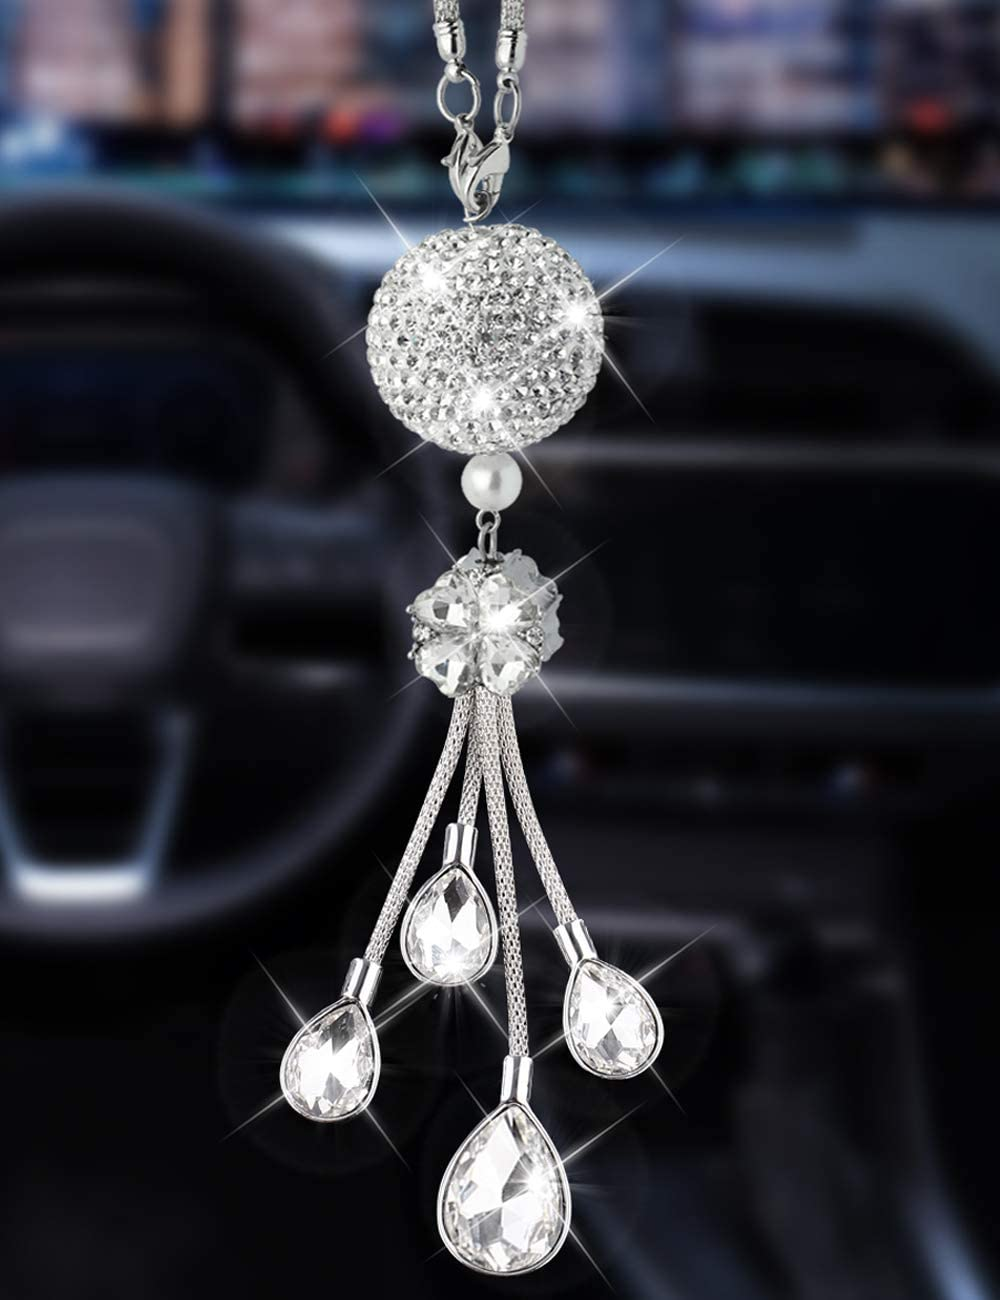 White Alonar White Ball and Drops Bling Car Interior Accessories Sparkly Crystal Car Rear View Mirror Charms Decor Hanging Bling Car Pendant